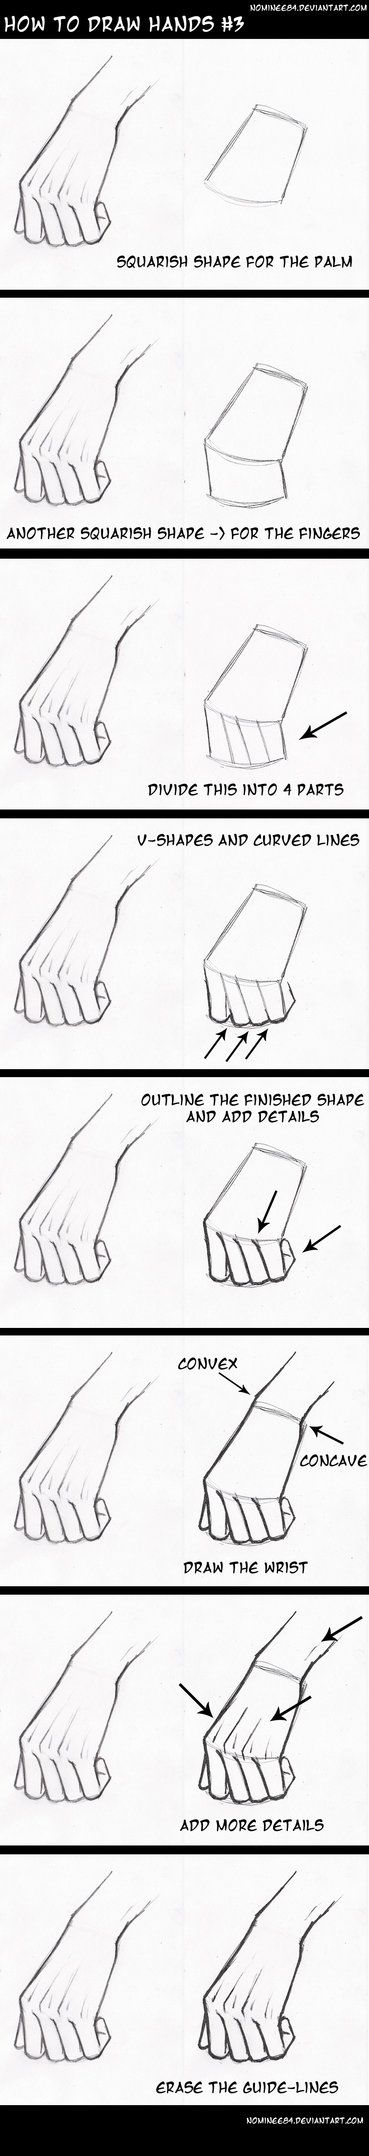 how to draw hands3 by nominee84 on deviantART